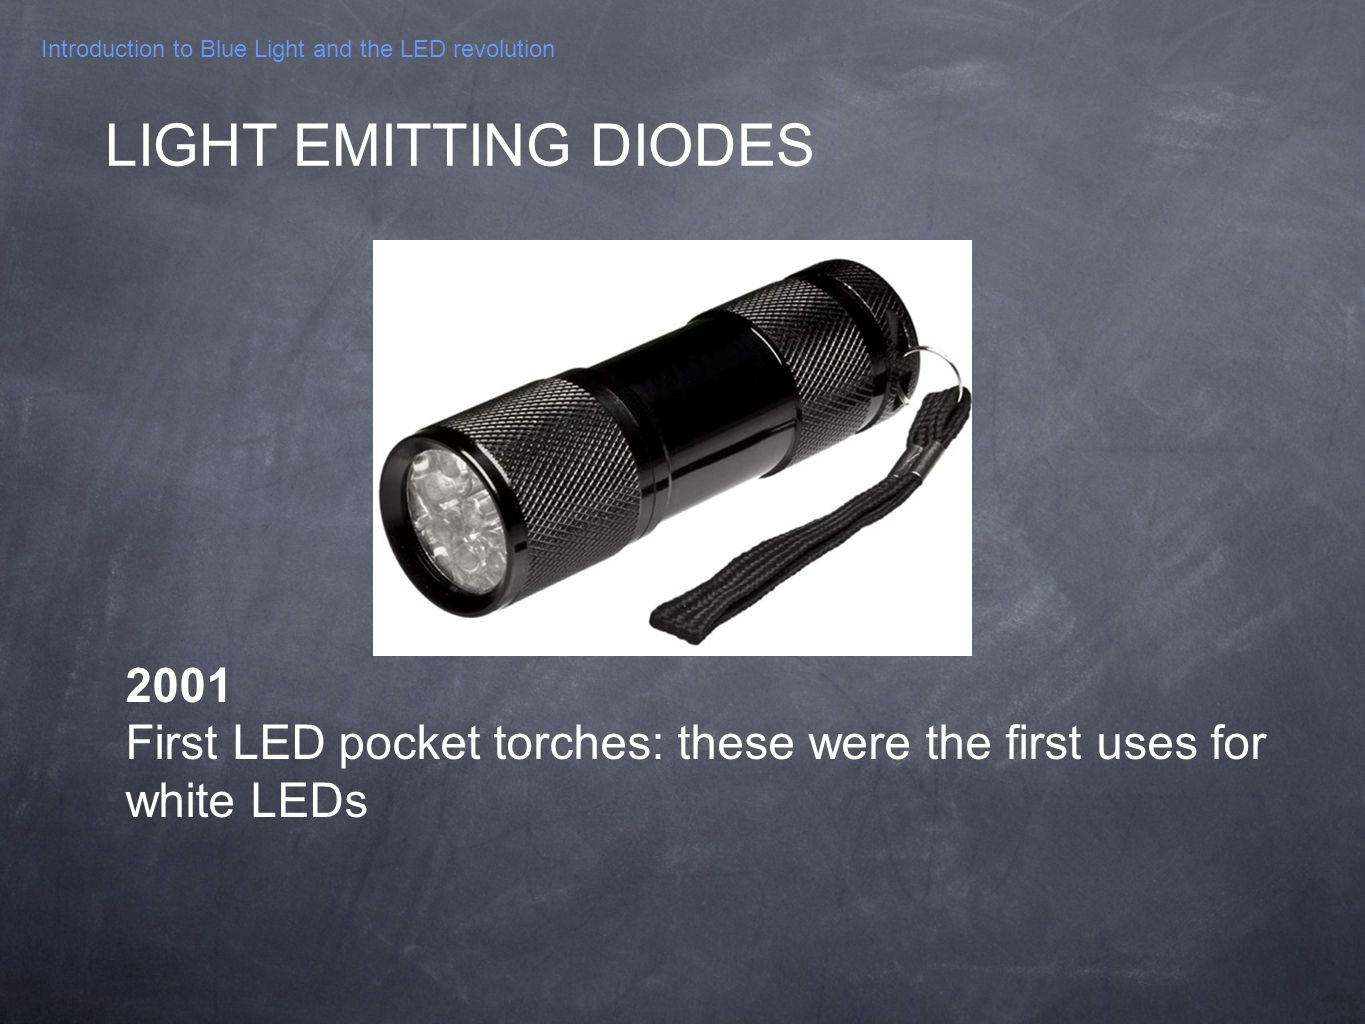 Introduction to Blue Light and the LED revolution 2001 First LED pocket torches: these were the first uses for white LEDs LIGHT EMITTING DIODES